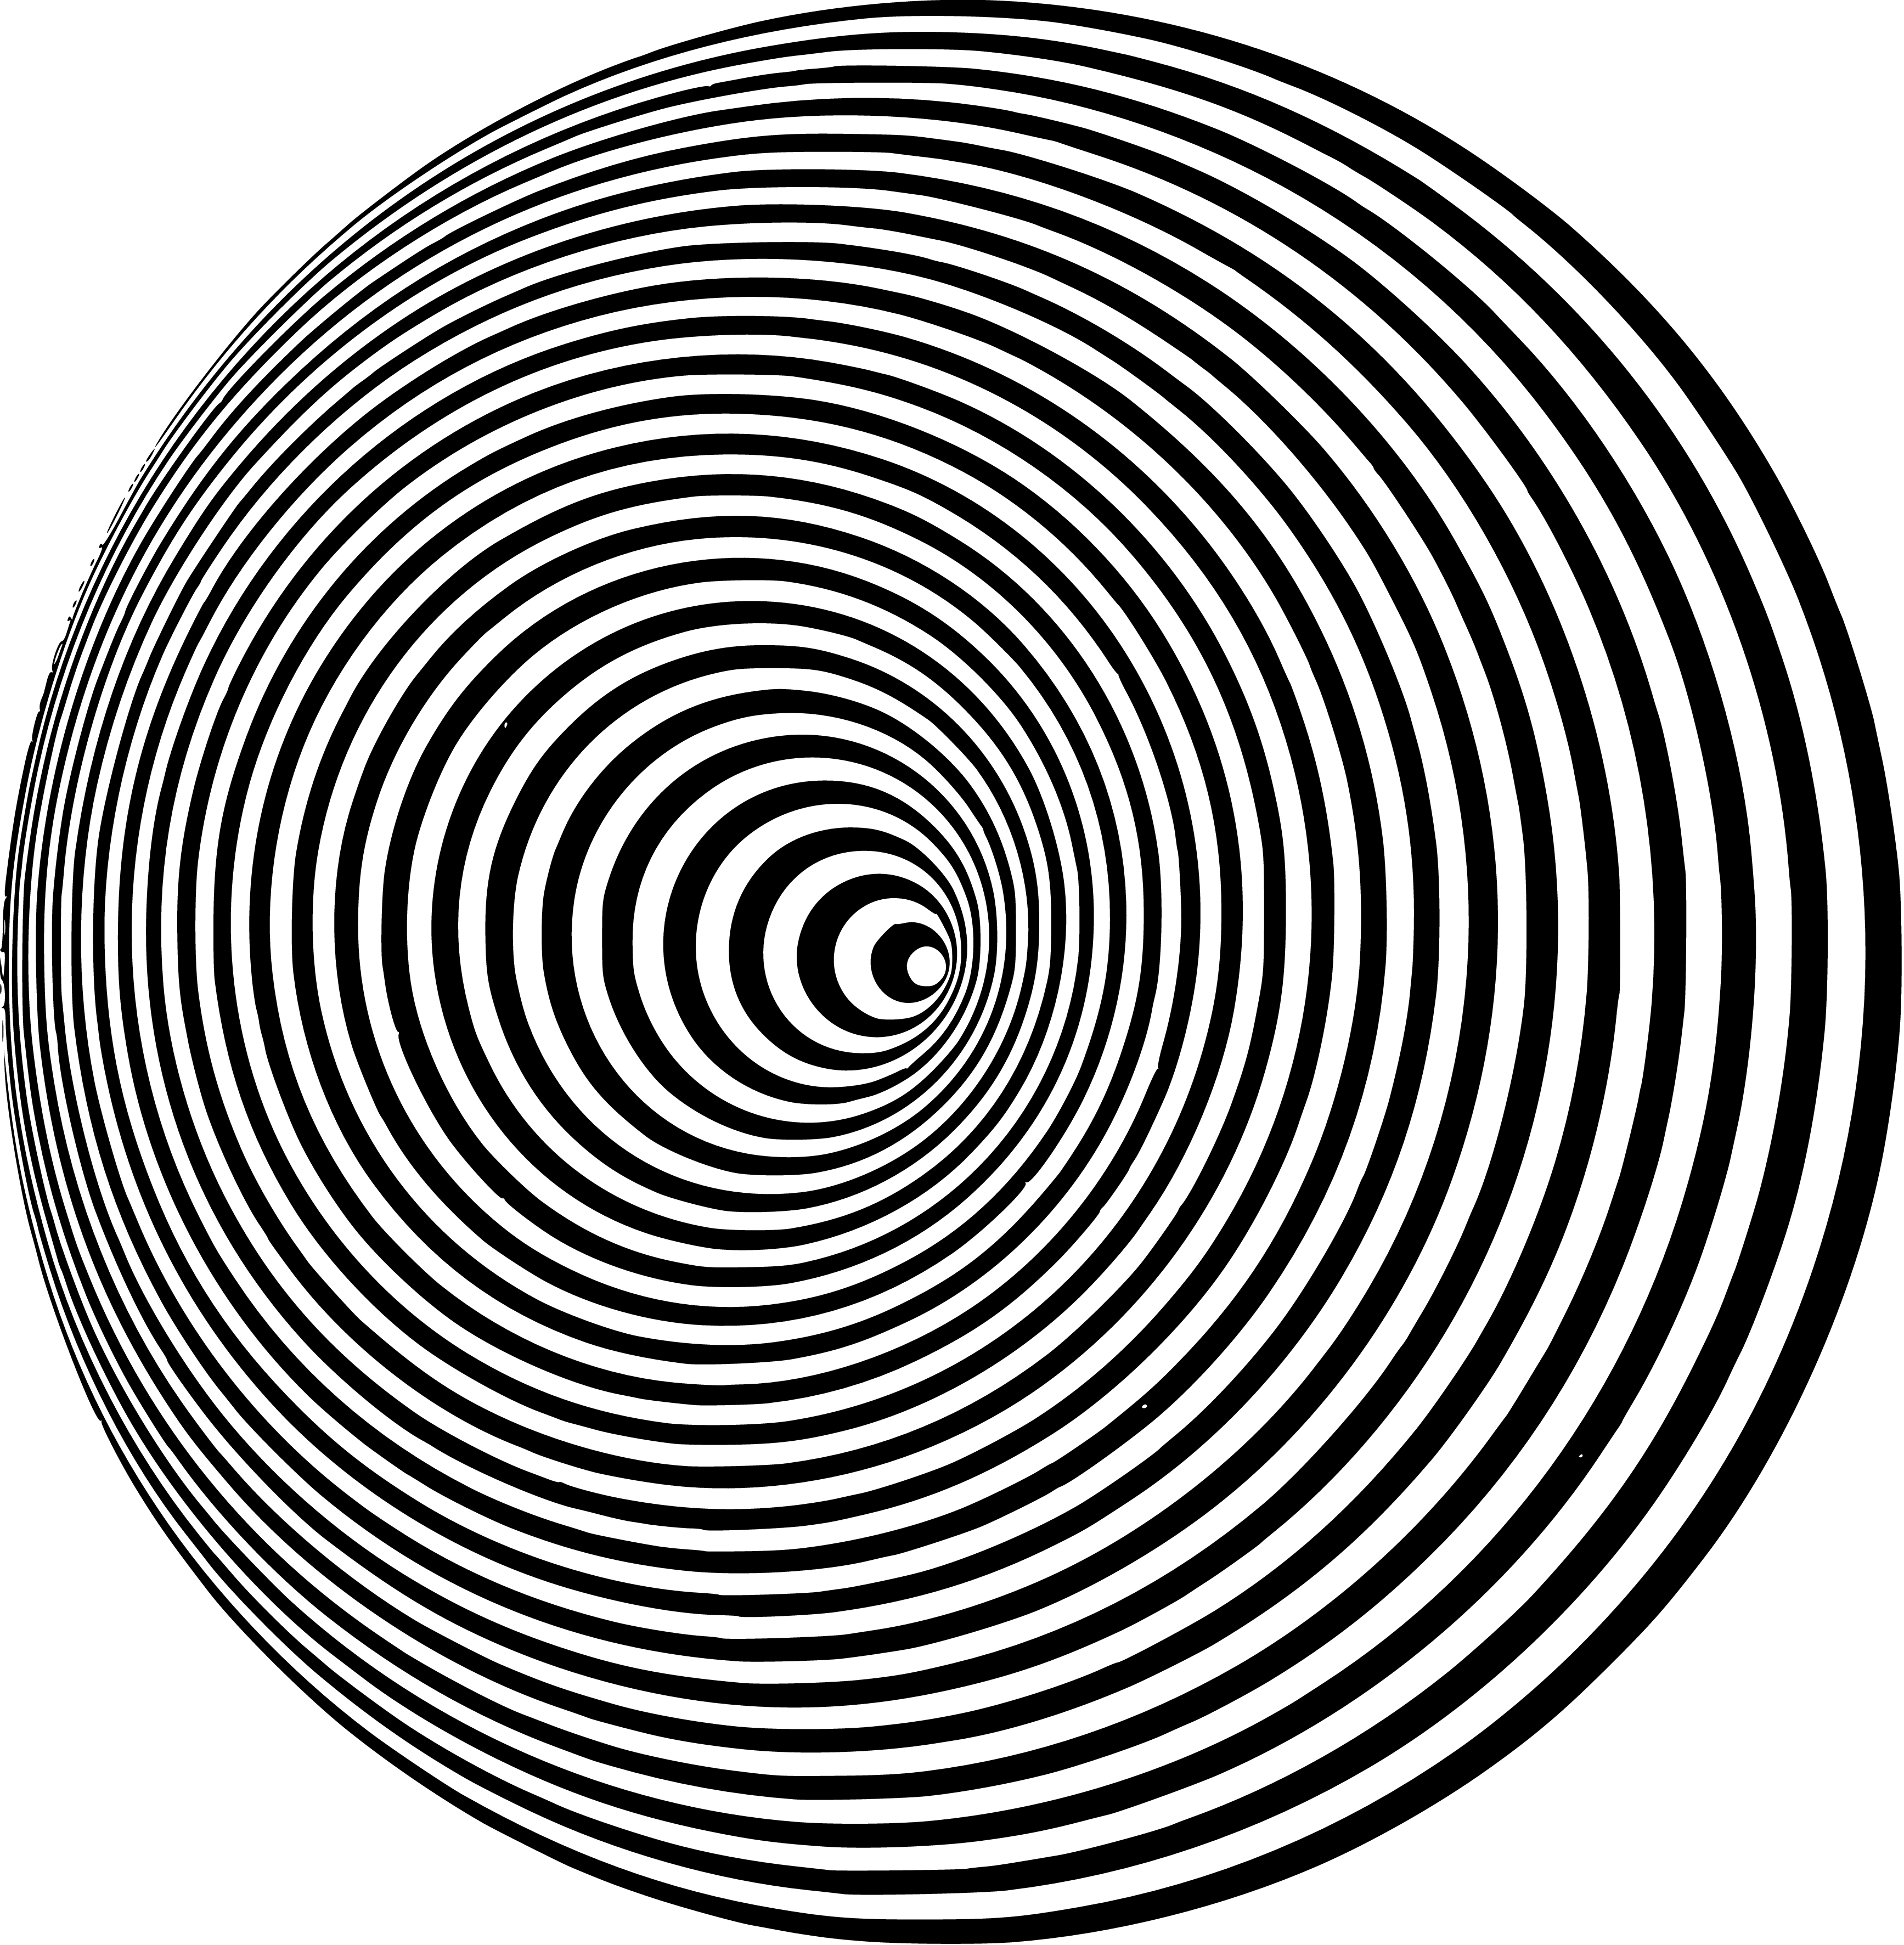 Drawing wall optical illusion. Vortex illusions pinterest